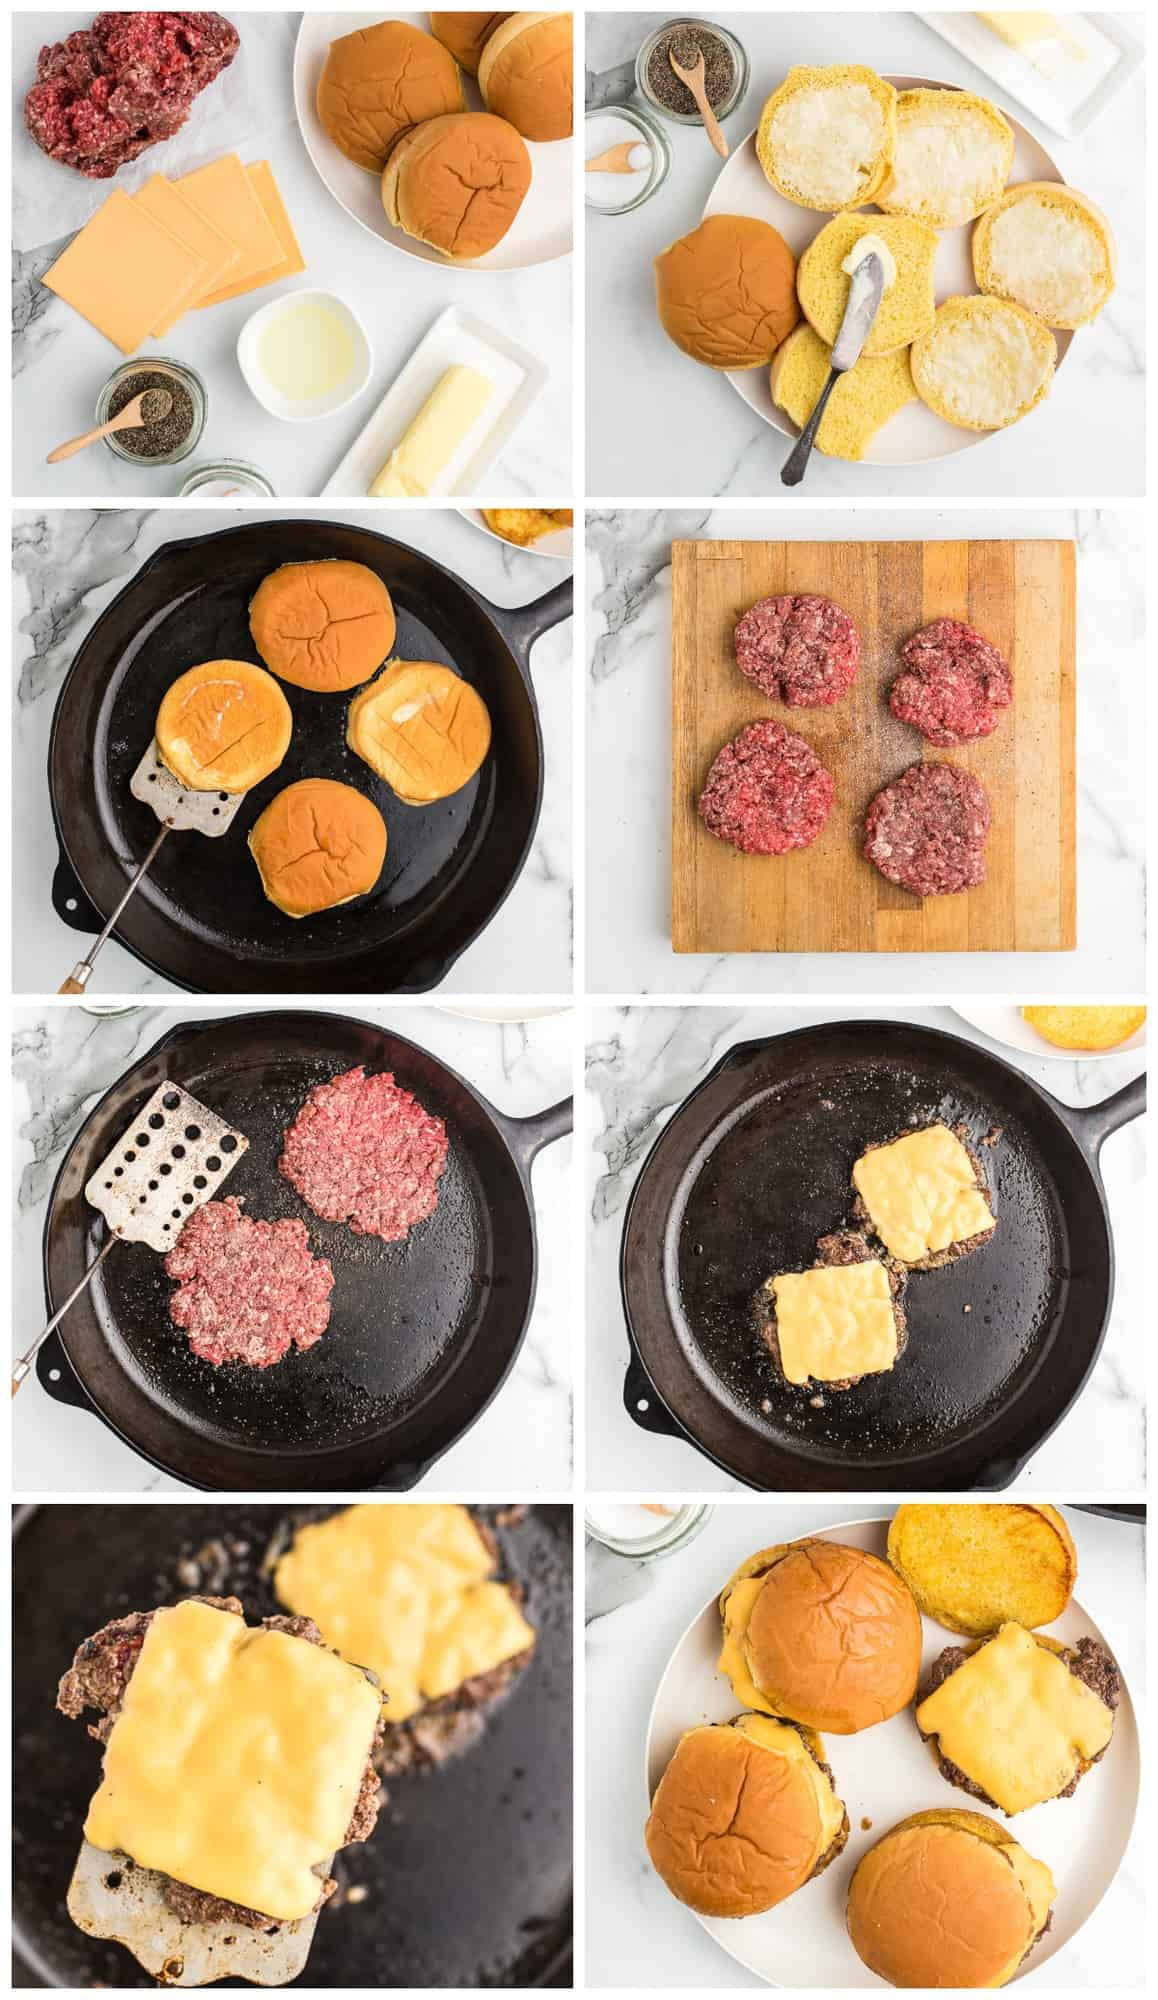 smash burgers step by step process shots